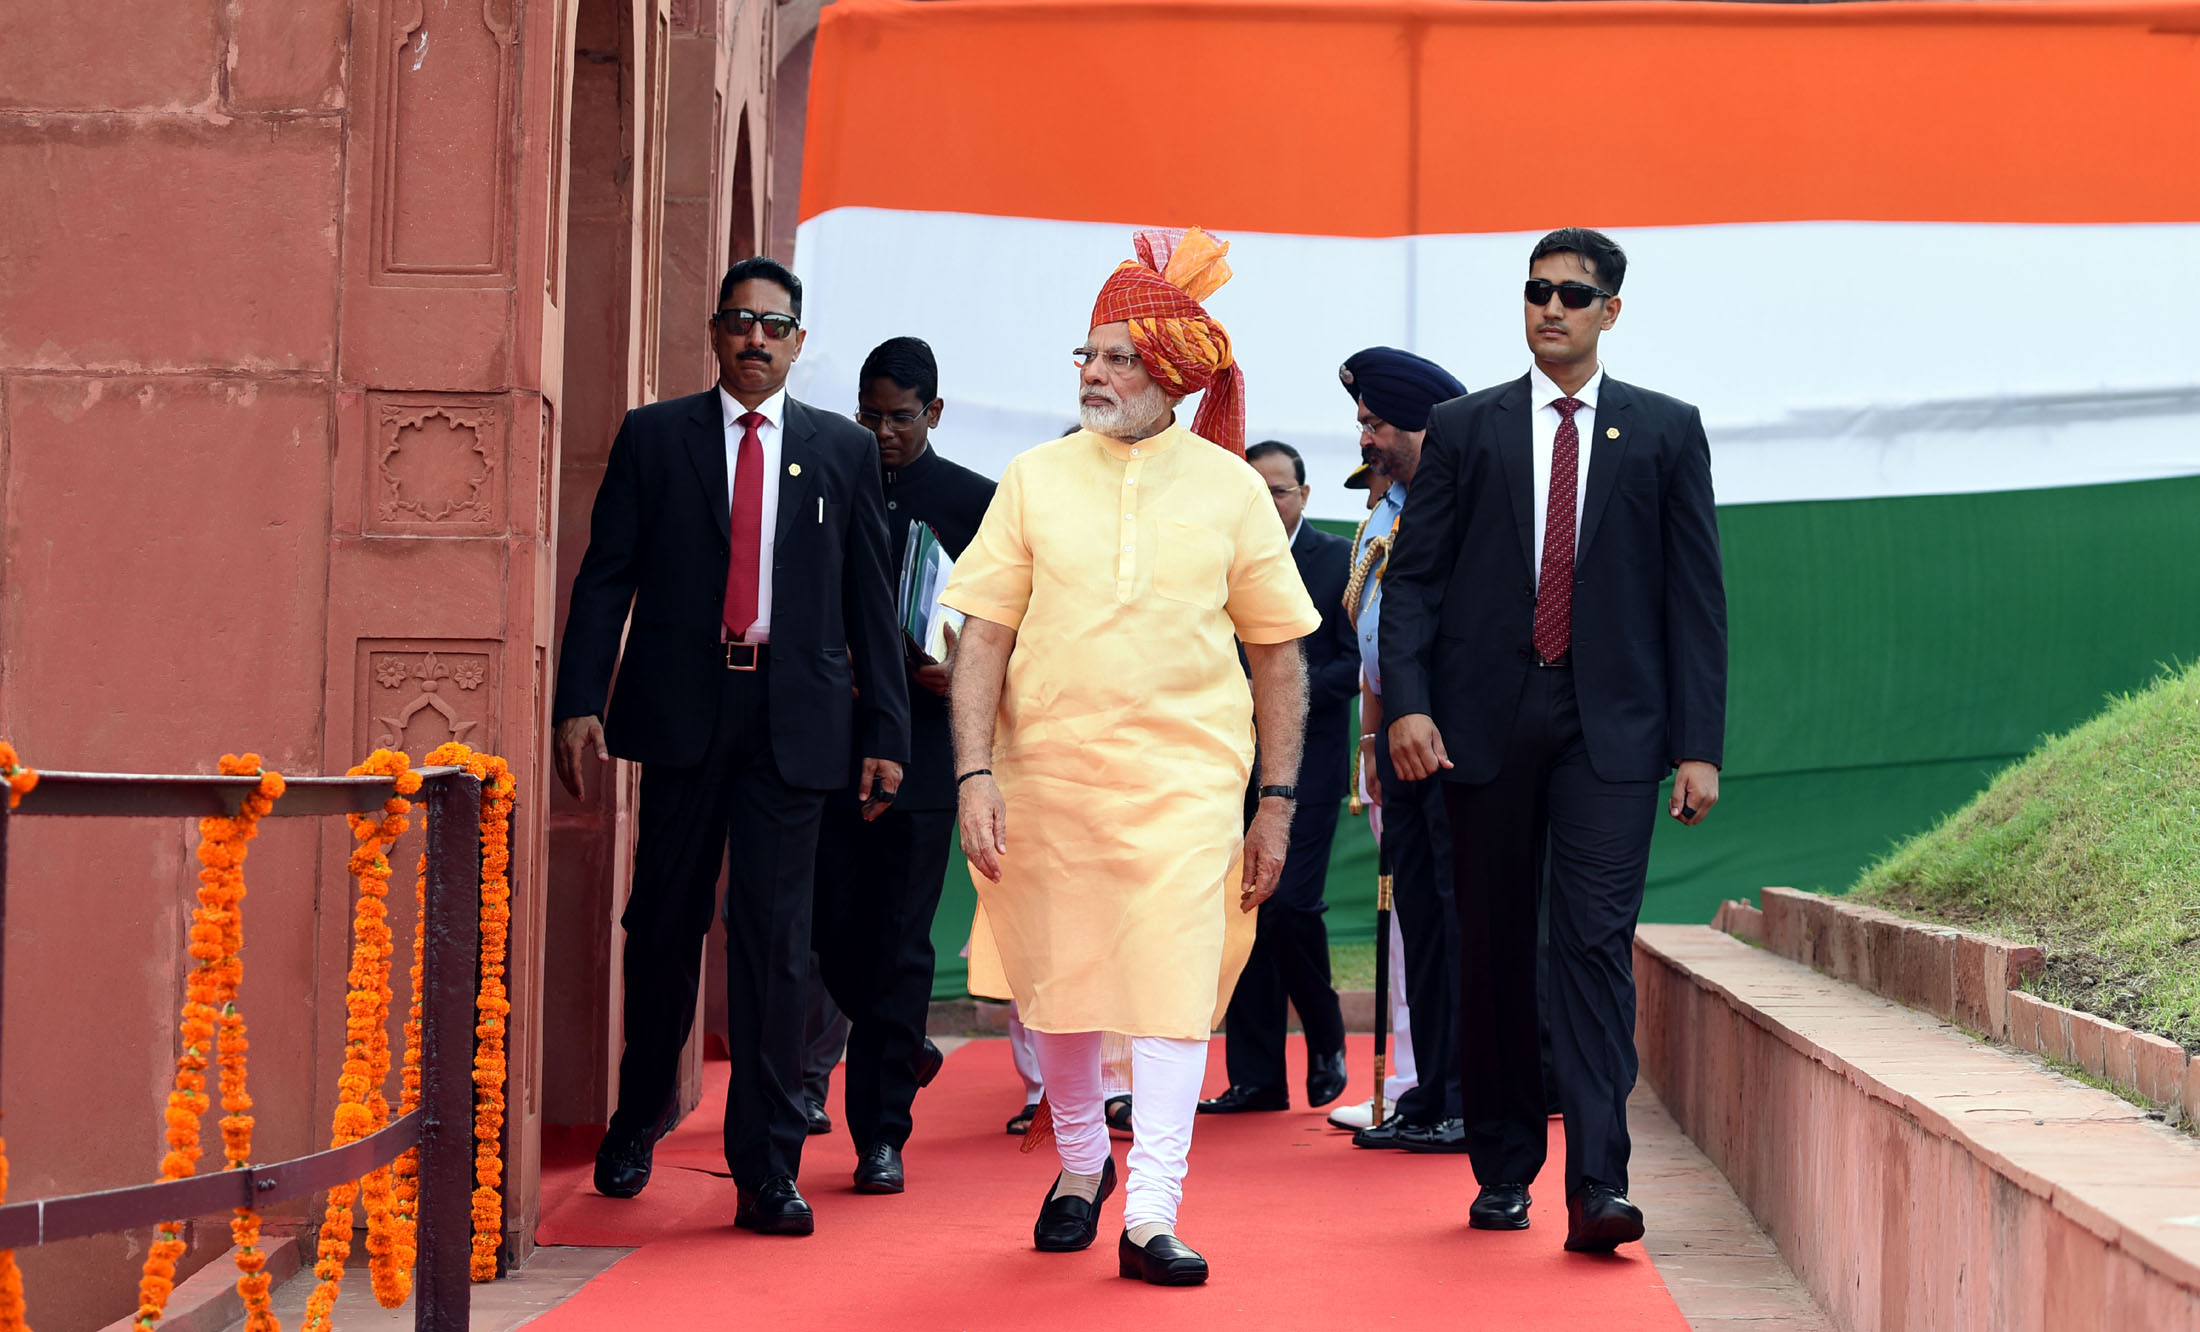 The Prime Minister, Shri Narendra Modi walking towards the dais to address the Nation at the Red Fort, on the occasion of 71st Independence Day, in Delhi on August 15, 2017.